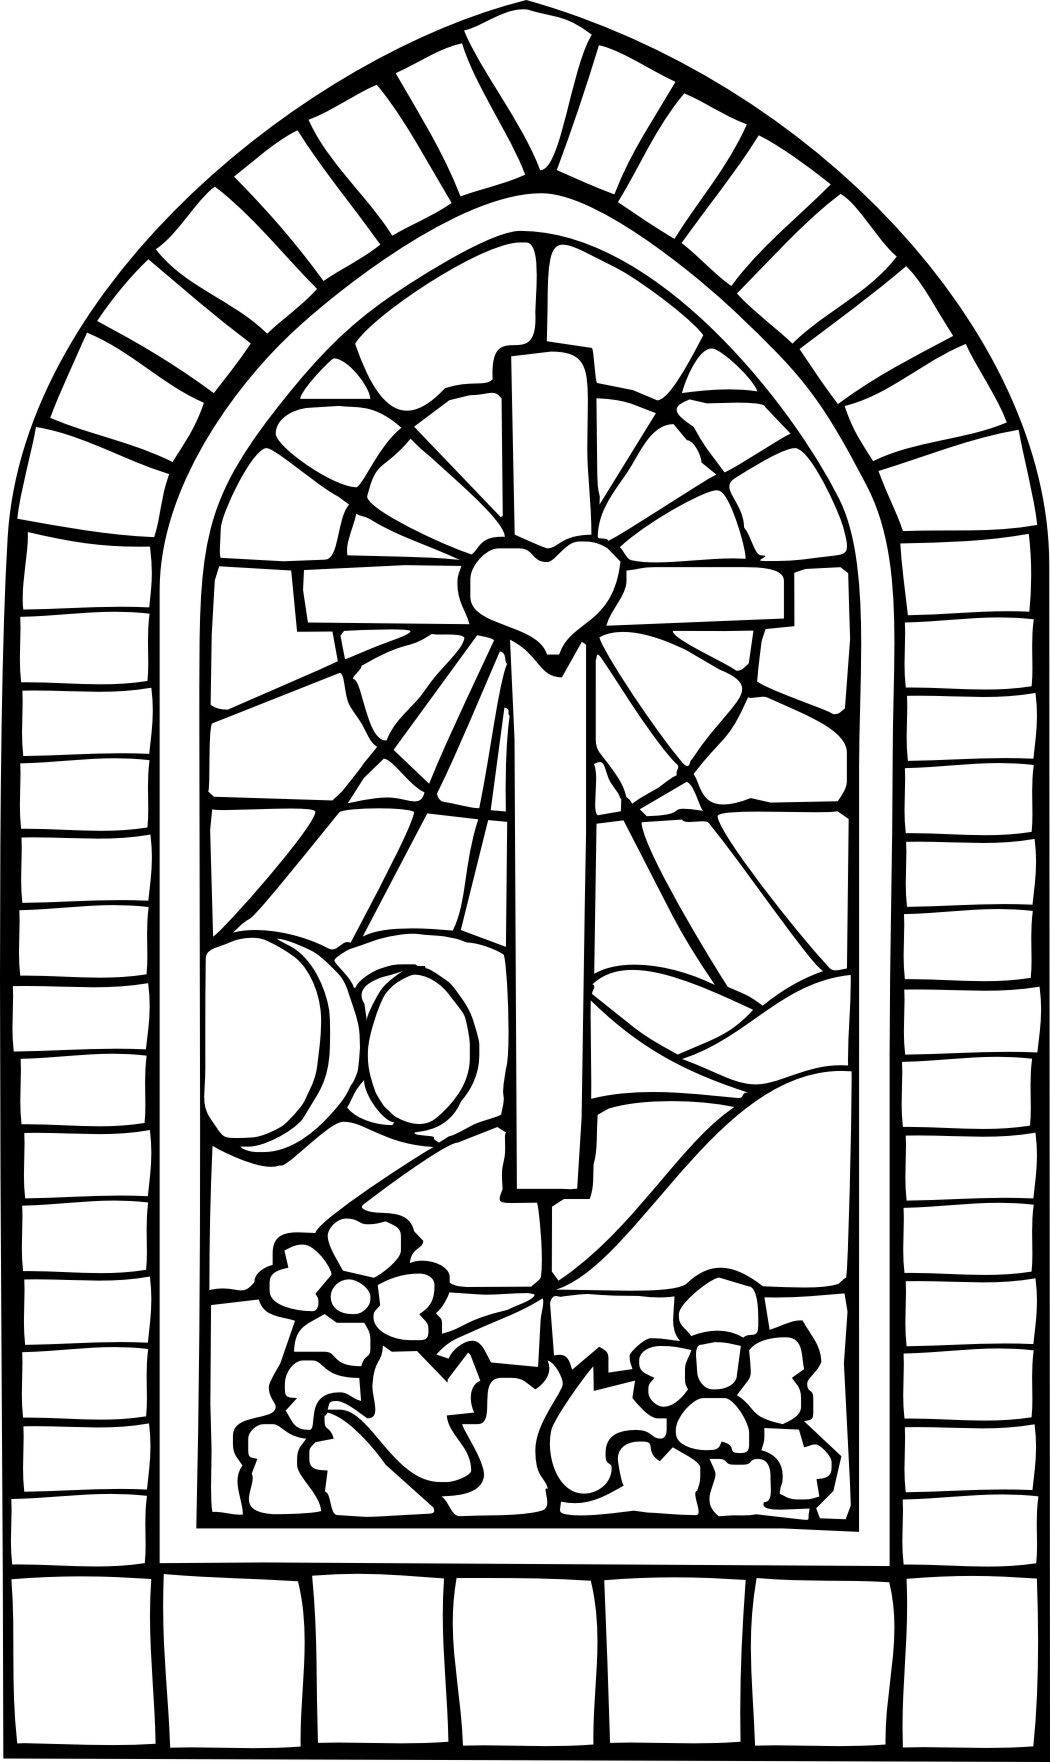 religious stained glass coloring pages - photo#17